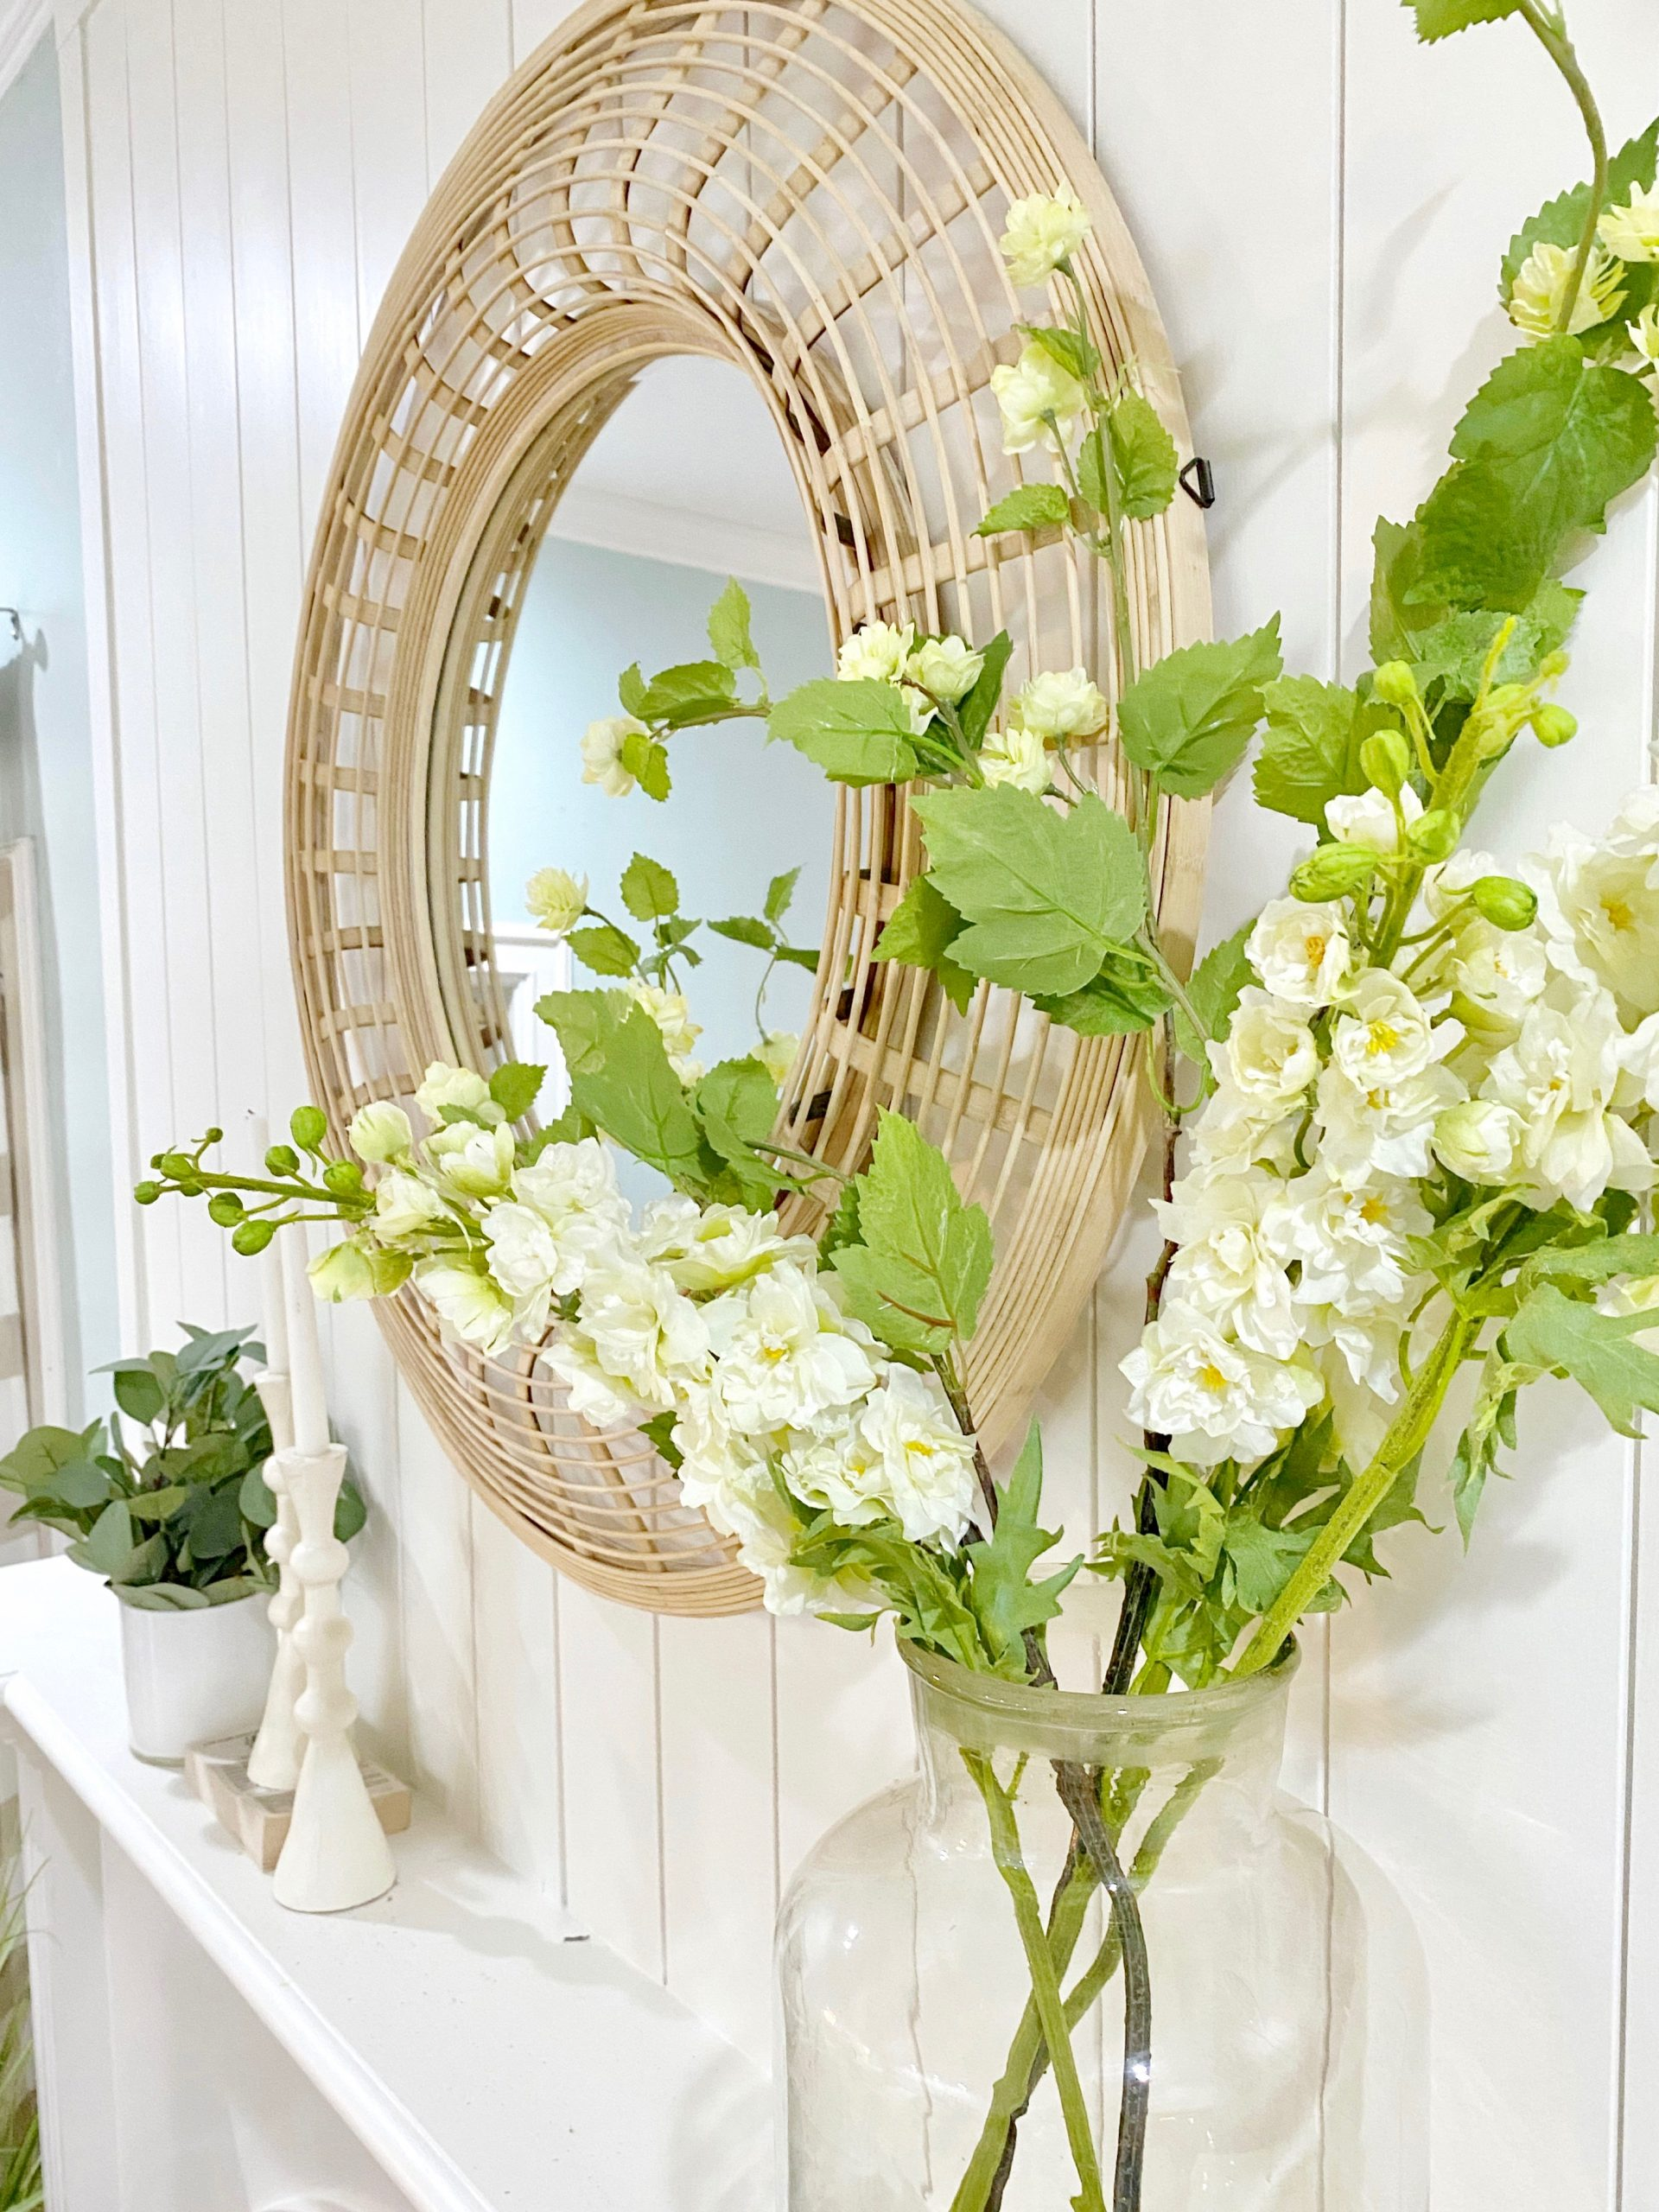 2020 Spring Home Tour And Decor Trends Cutertudor